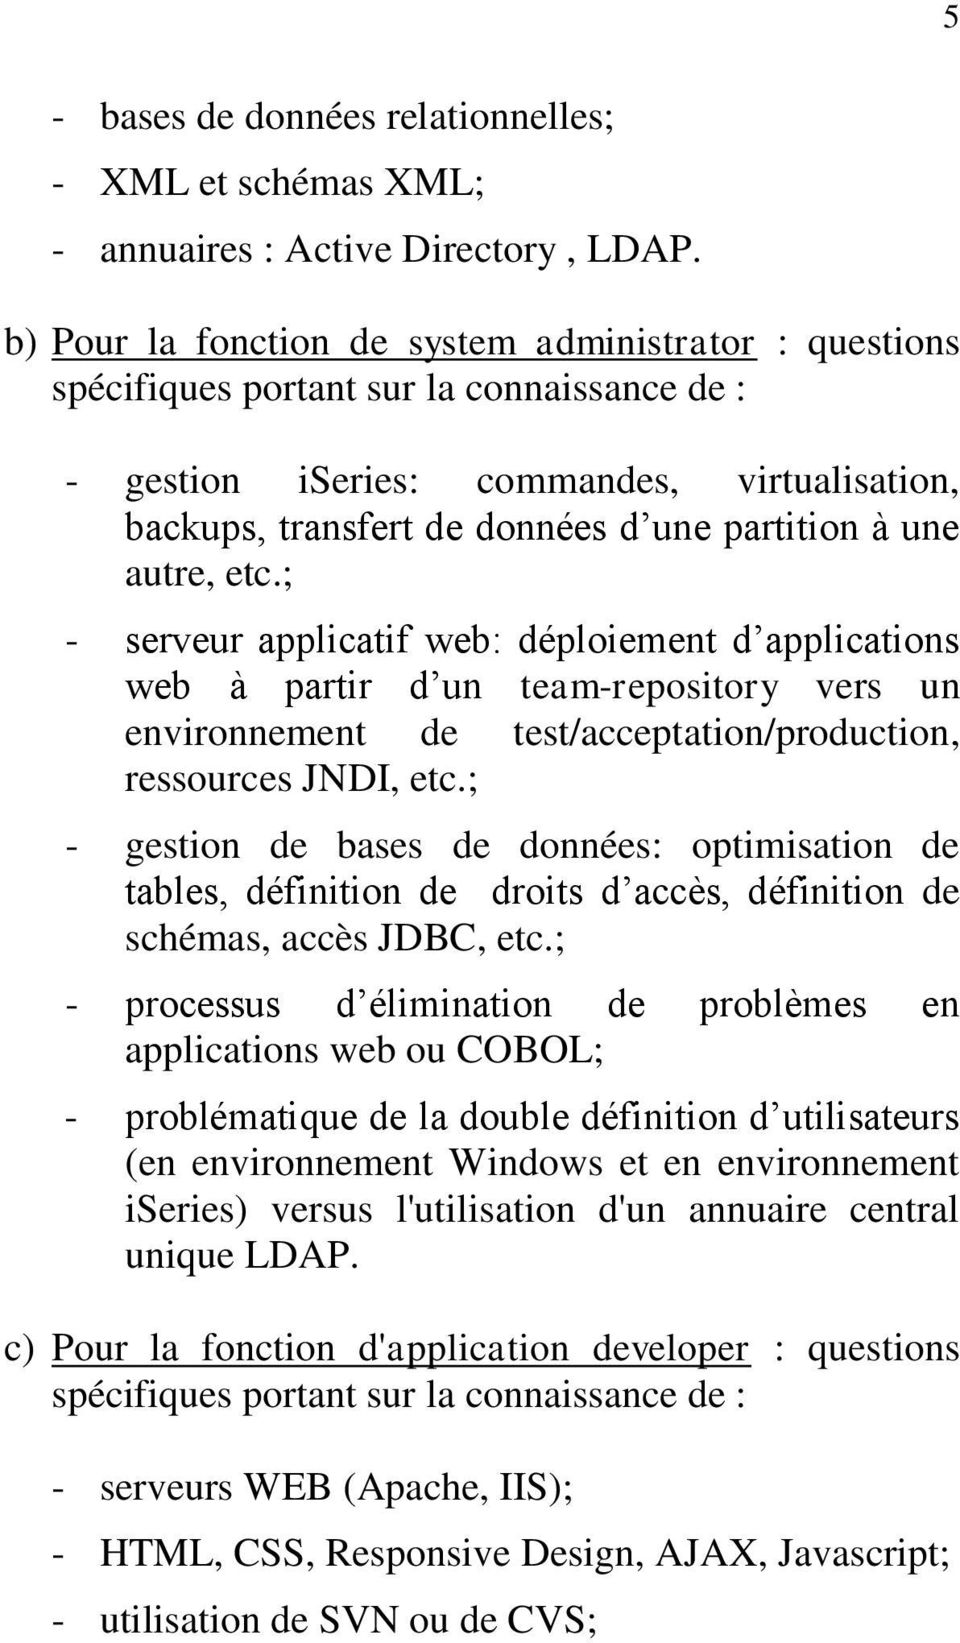 autre, etc.; - serveur applicatif web: déploiement d applications web à partir d un team-repository vers un environnement de test/acceptation/production, ressources JNDI, etc.